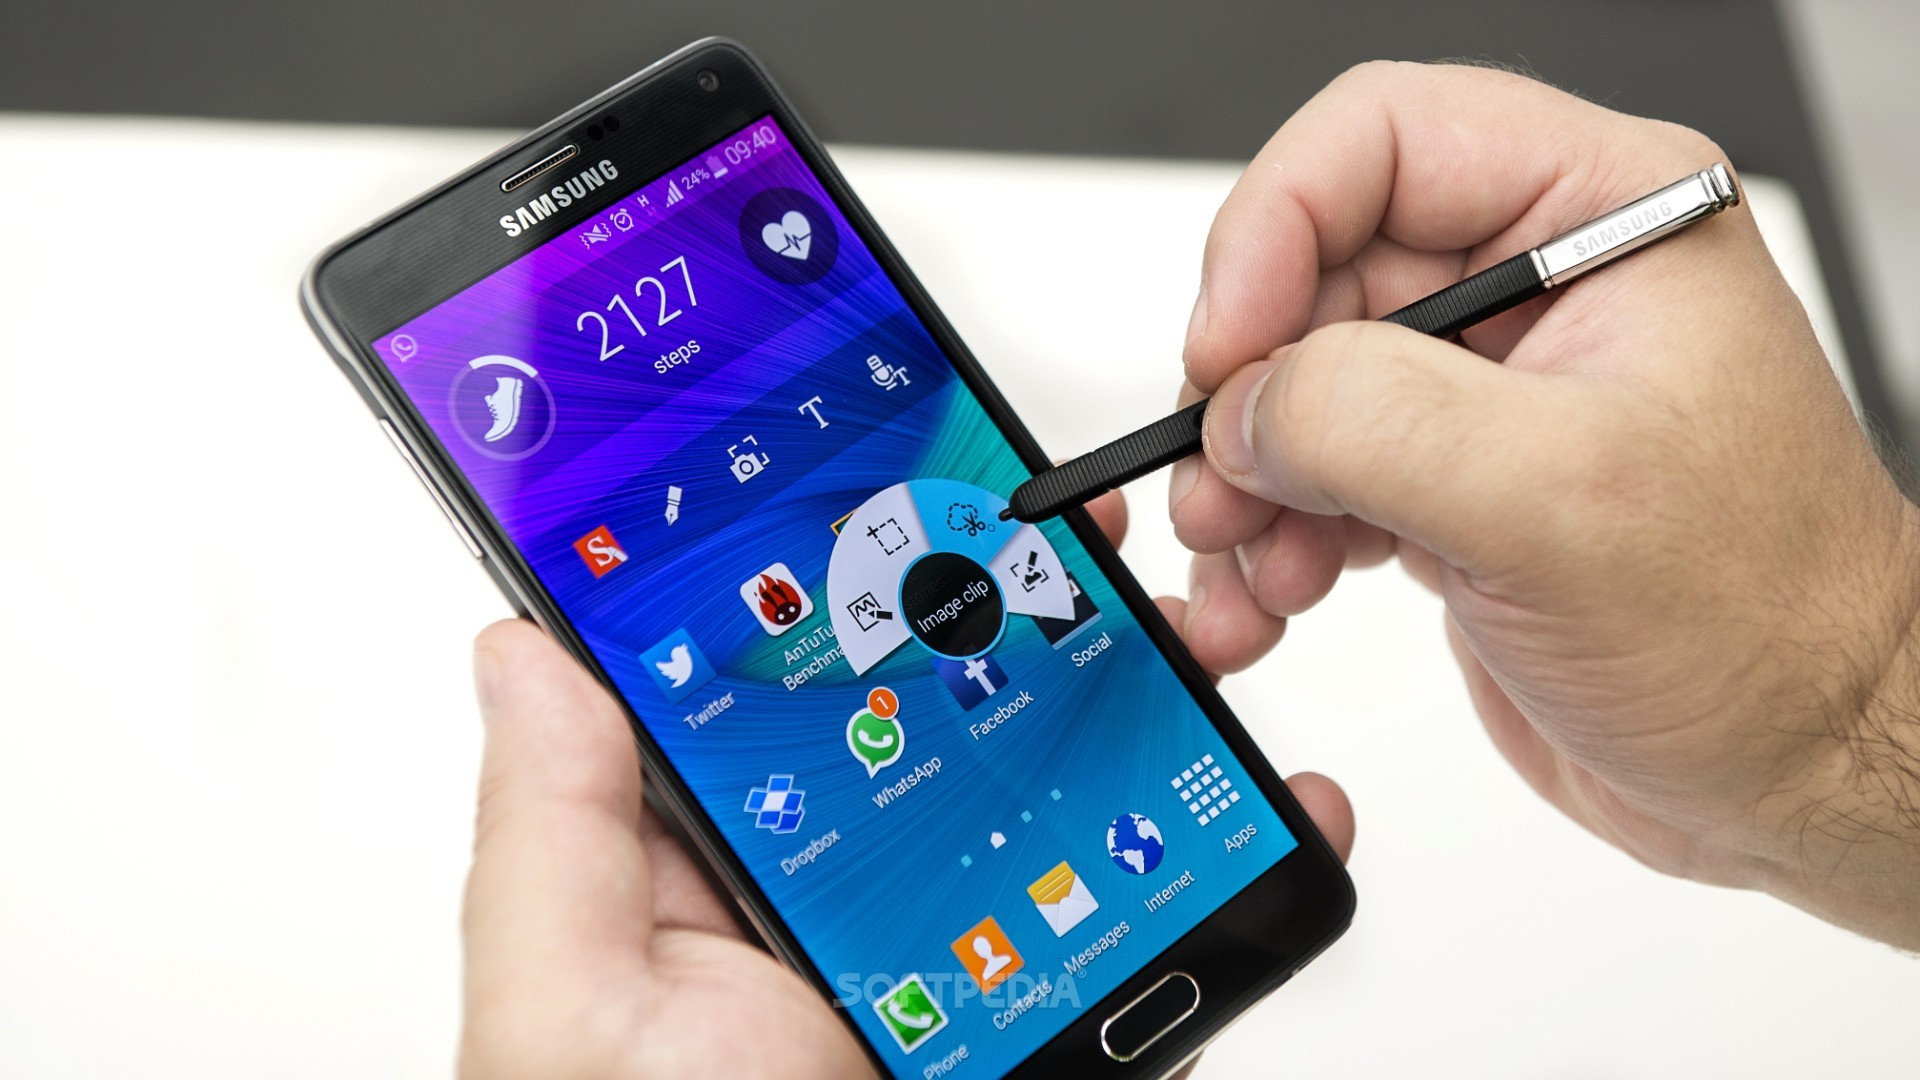 Samsung-Android-5-0-Lollipop-for-Galaxy-S4-Galaxy-Note-3-and-Note-4-Arrives-in-Early-2015-466631-5